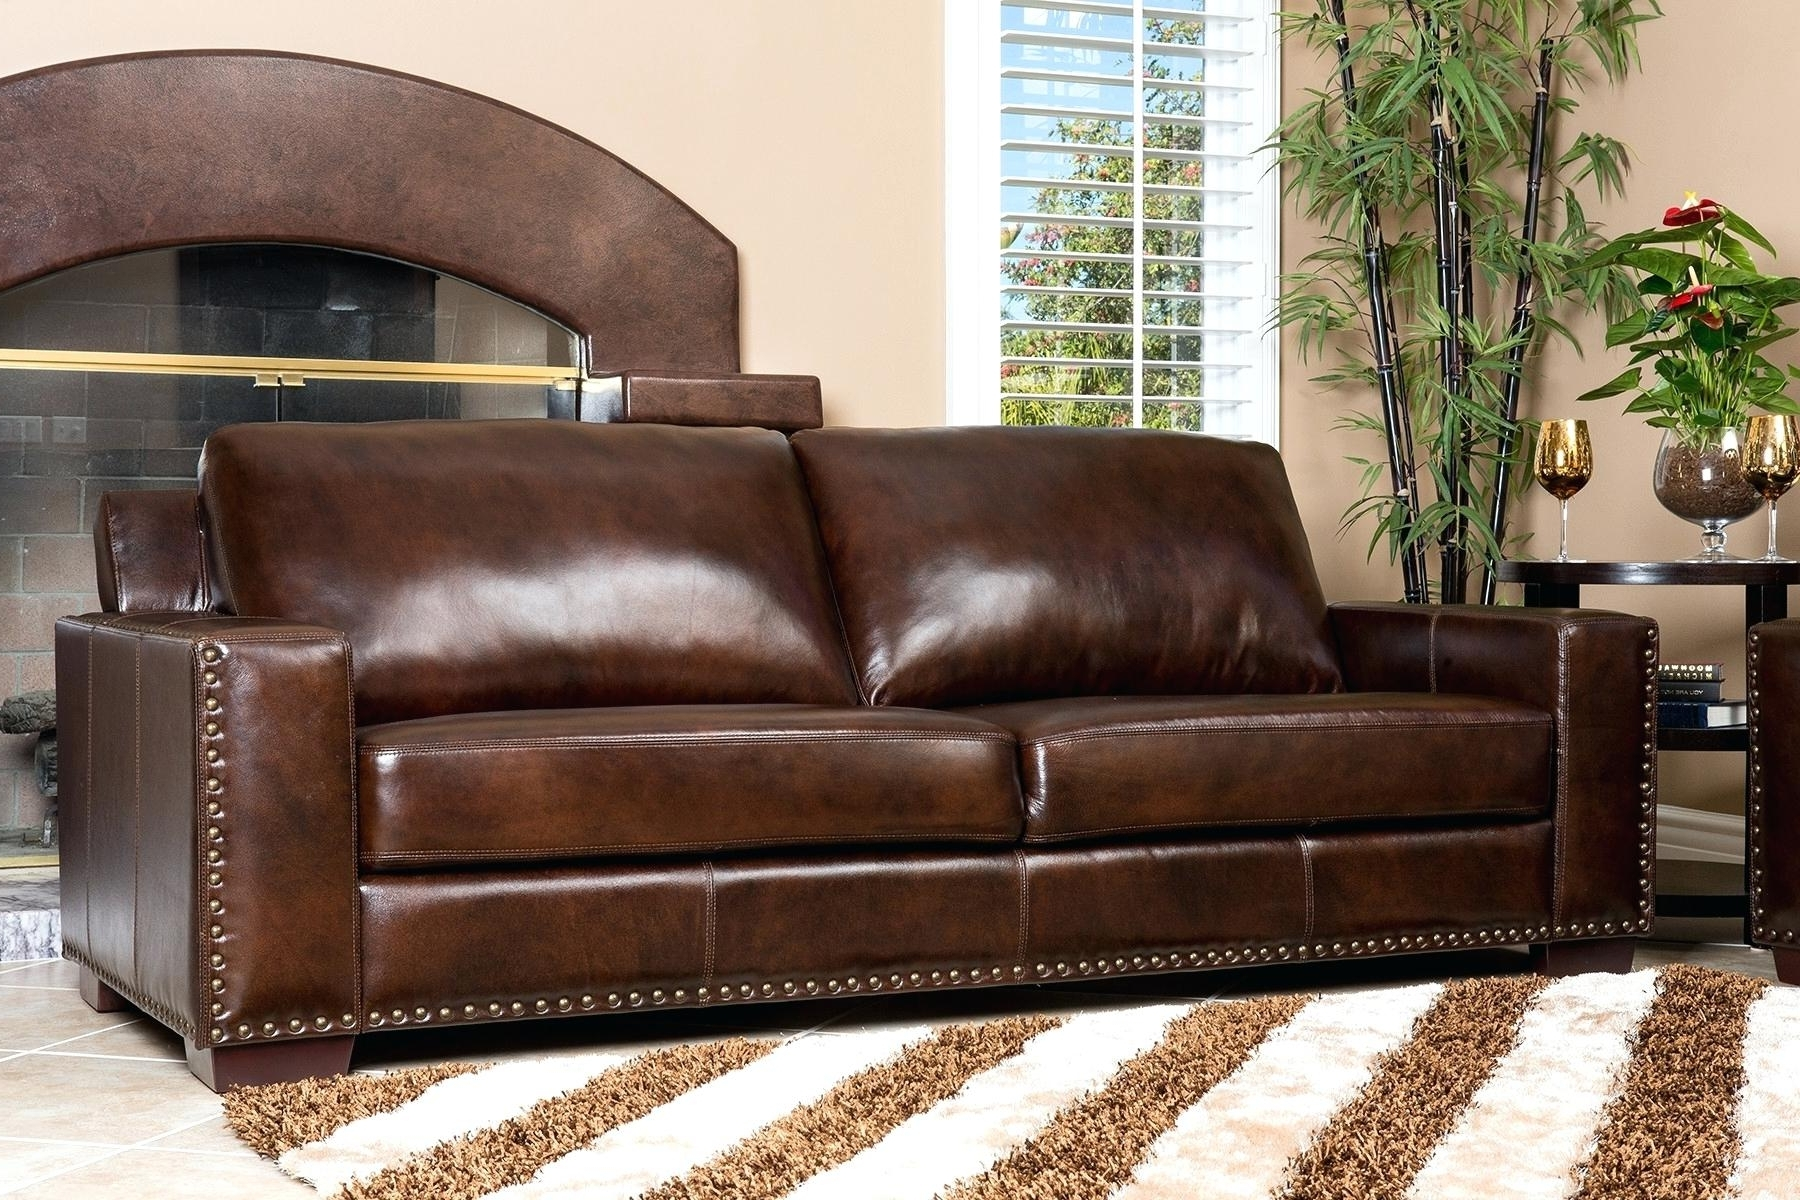 Newest Craigslist Leather Sofas In Restoration Hardware Leather Sofa Craigslist Chair Churchill (View 16 of 20)